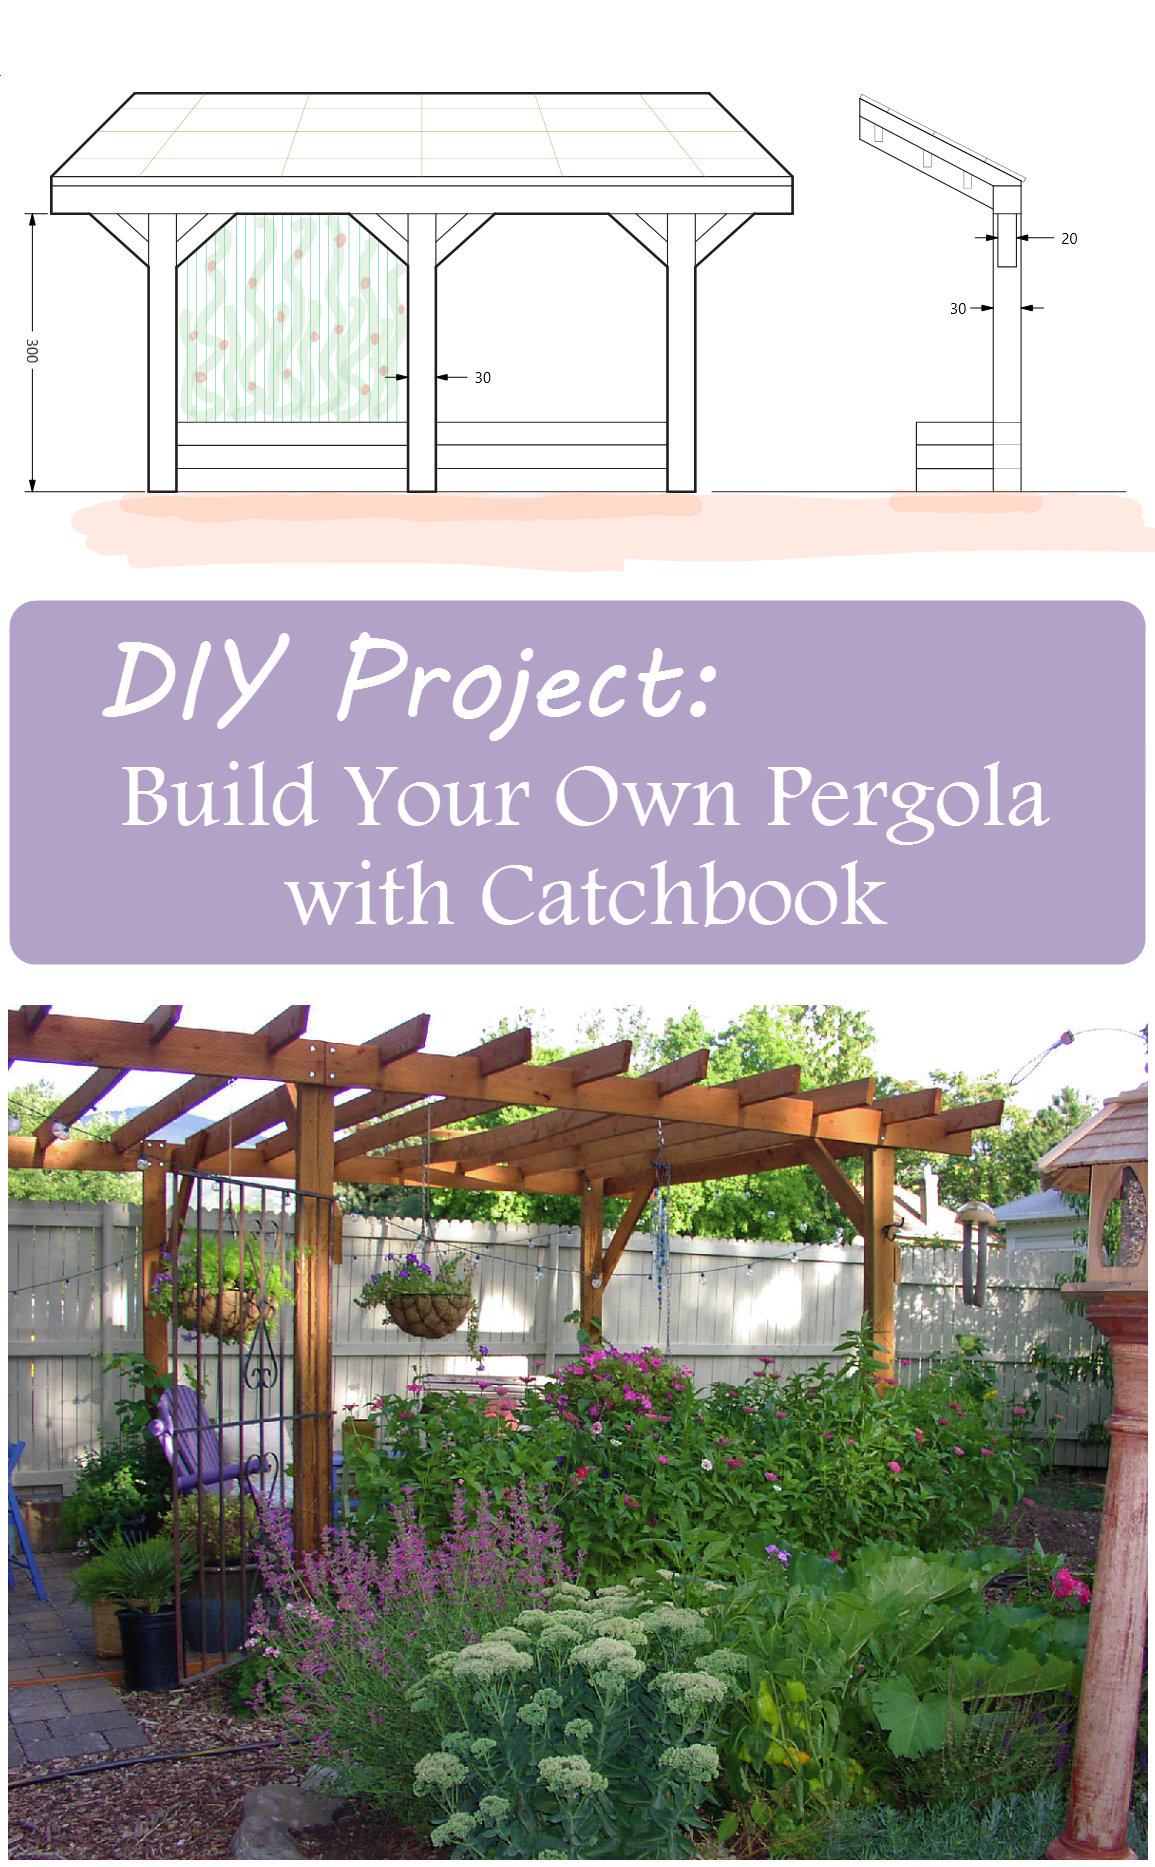 diy pergola with catchbook.png